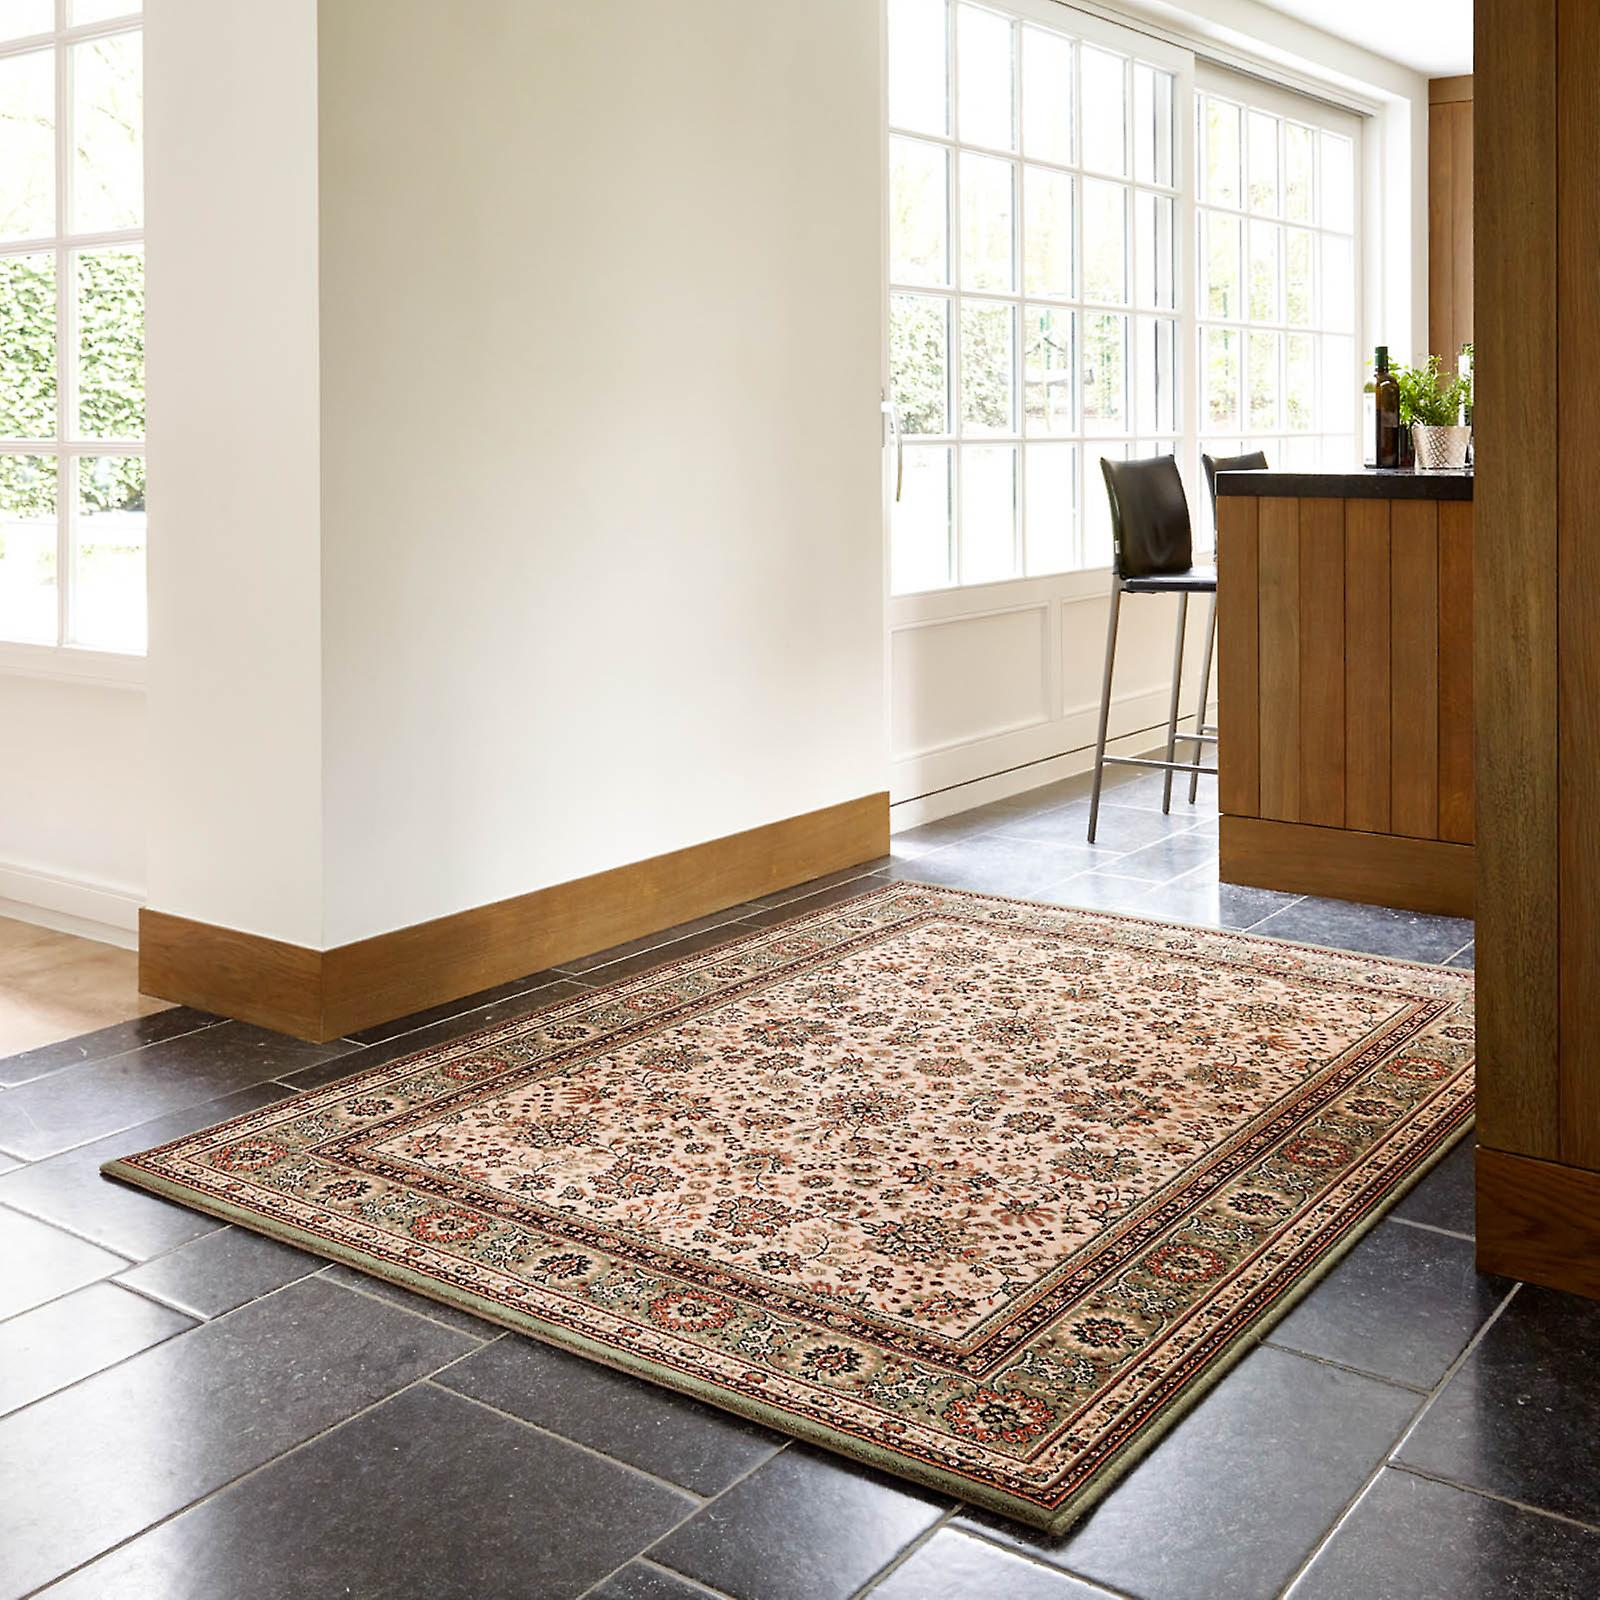 Lano Royal Rugs 1561 508 Beige Verde